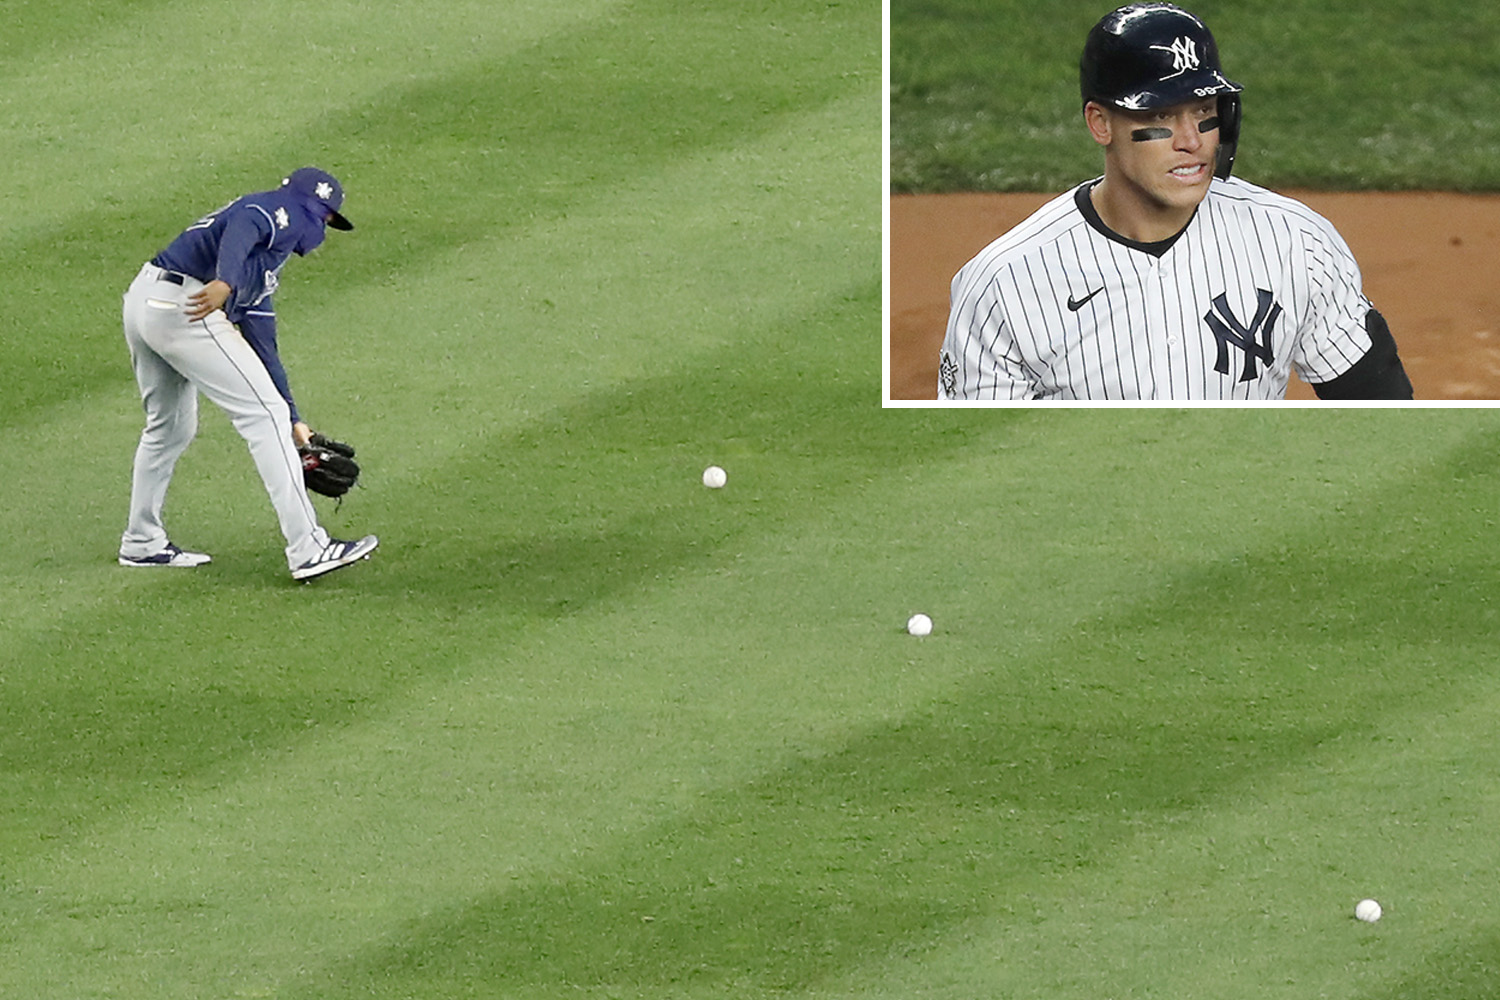 Yankees lose to Rays, fans throw balls and objects on the field